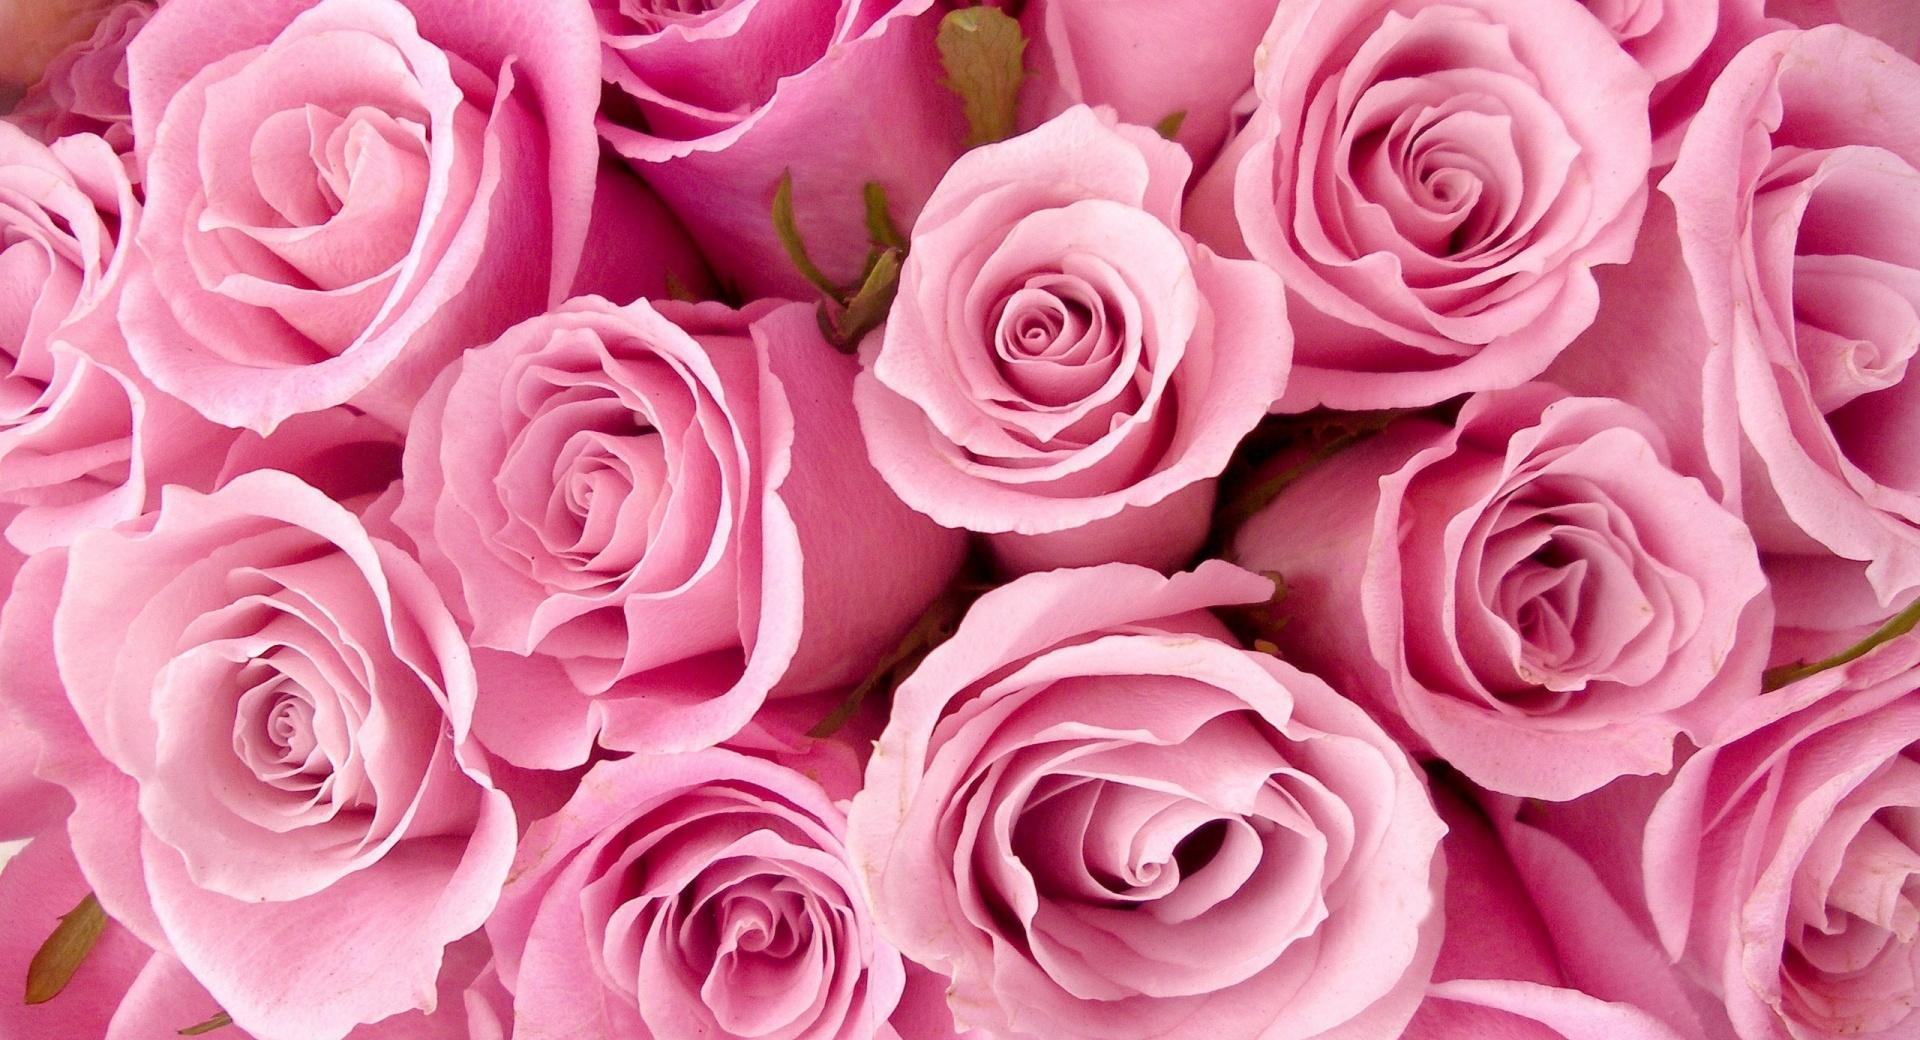 Pink Roses Close-up wallpapers HD quality